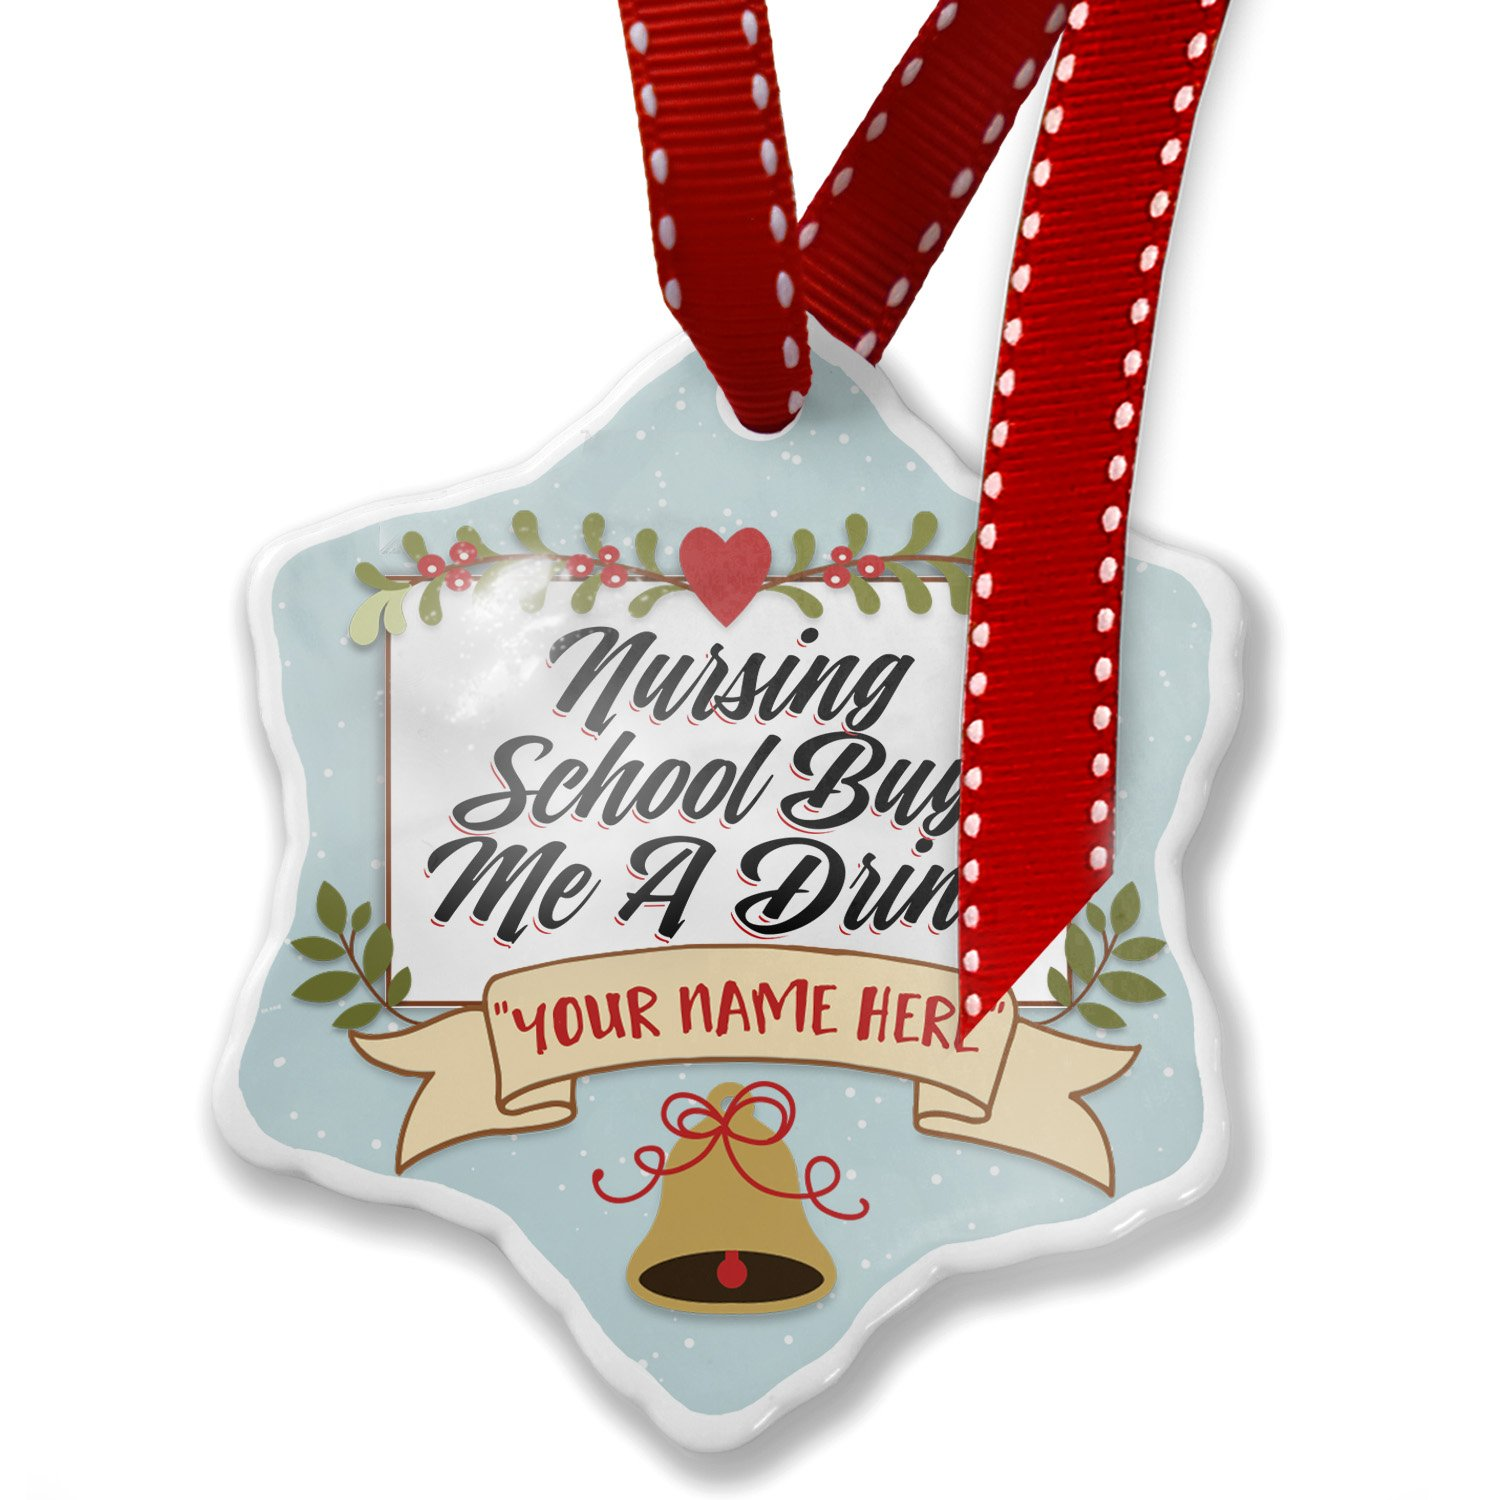 Add Your Own Custom Name, Vintage Lettering Nursing School Buy Me A Drink Christmas Ornament NEONBLOND